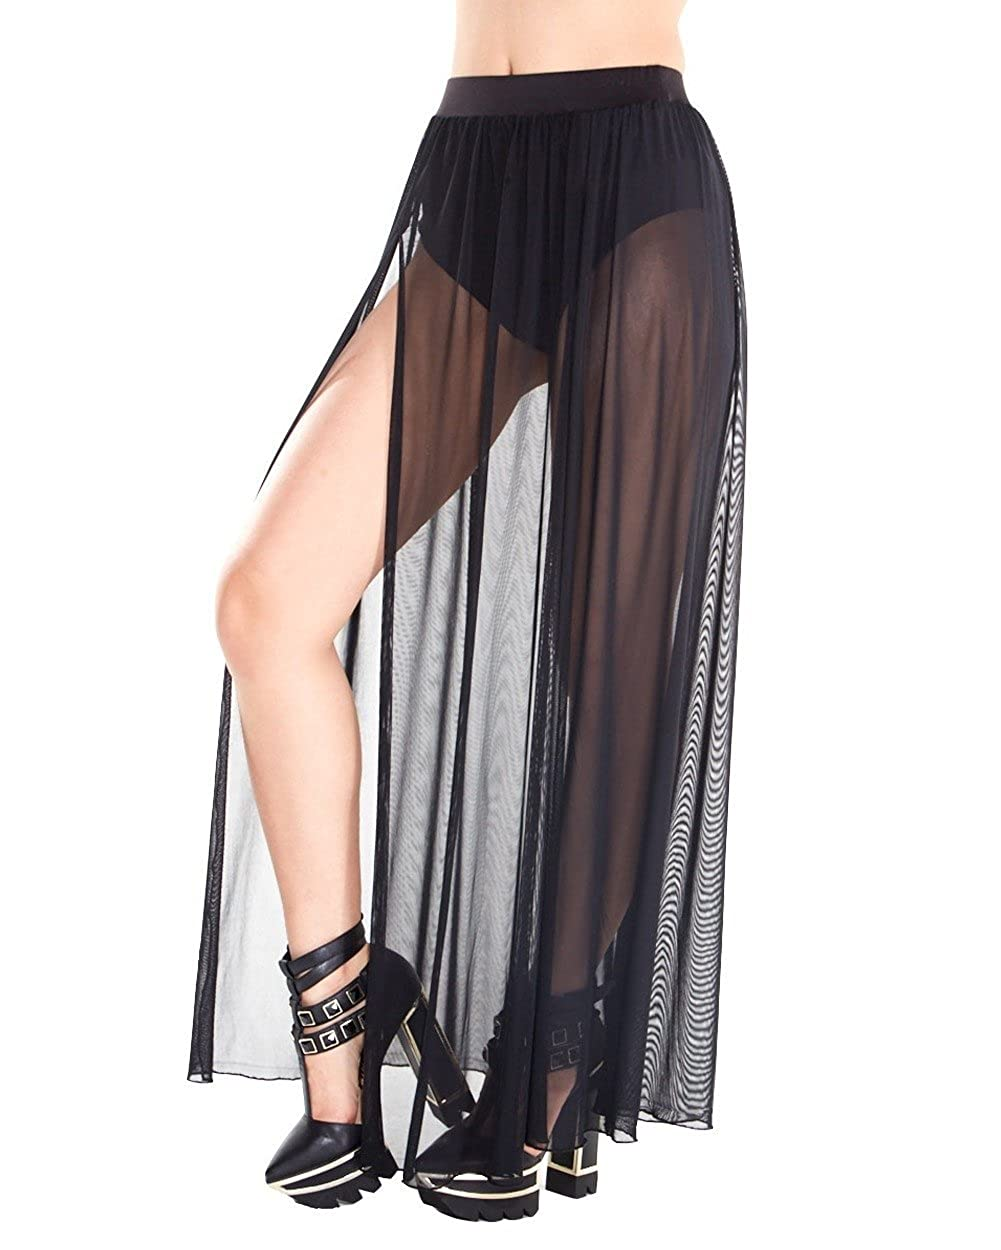 935c61375 Amazon.com: iHeartRaves Women's Stretchy Sheer Mesh and Lace Long Side Slit Maxi  Skirts: Clothing